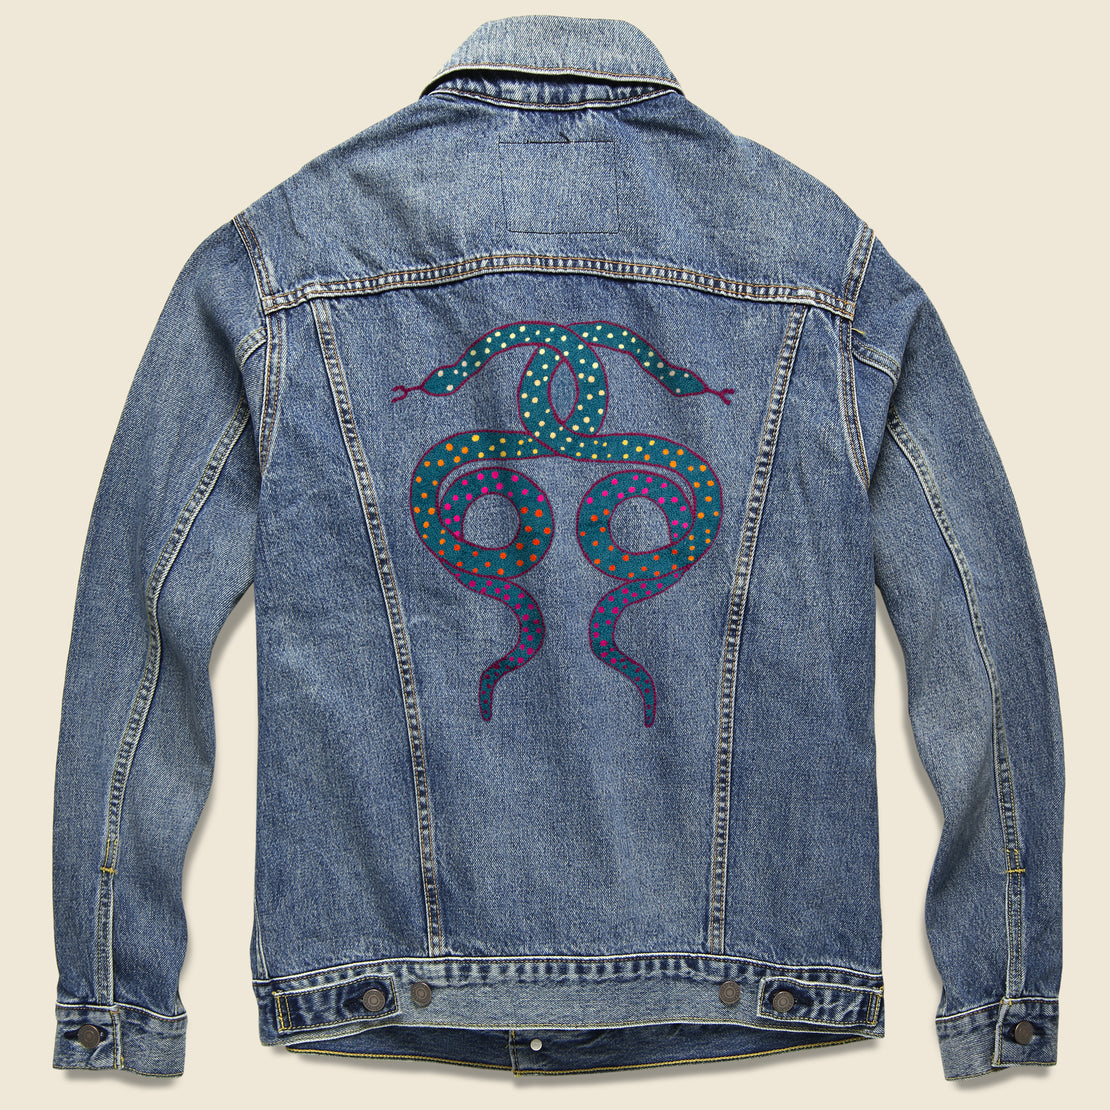 Fort Lonesome Levi's Trucker Jacket - United Snakes